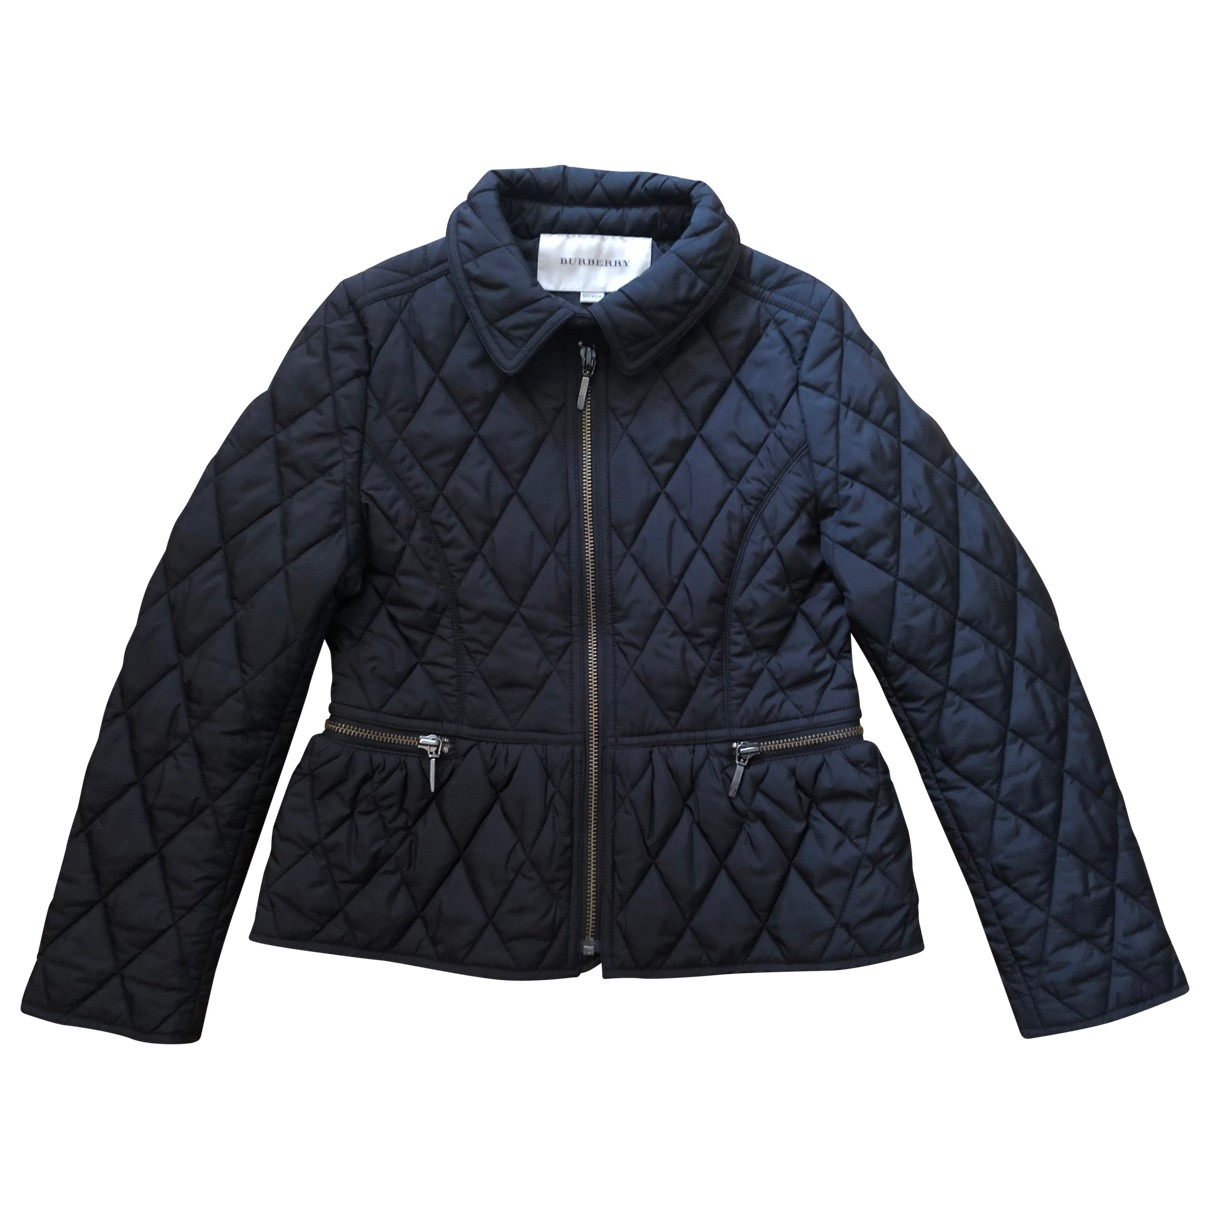 Burberry \N Black jacket & coat for Kids 10 years - until 56 inches UK